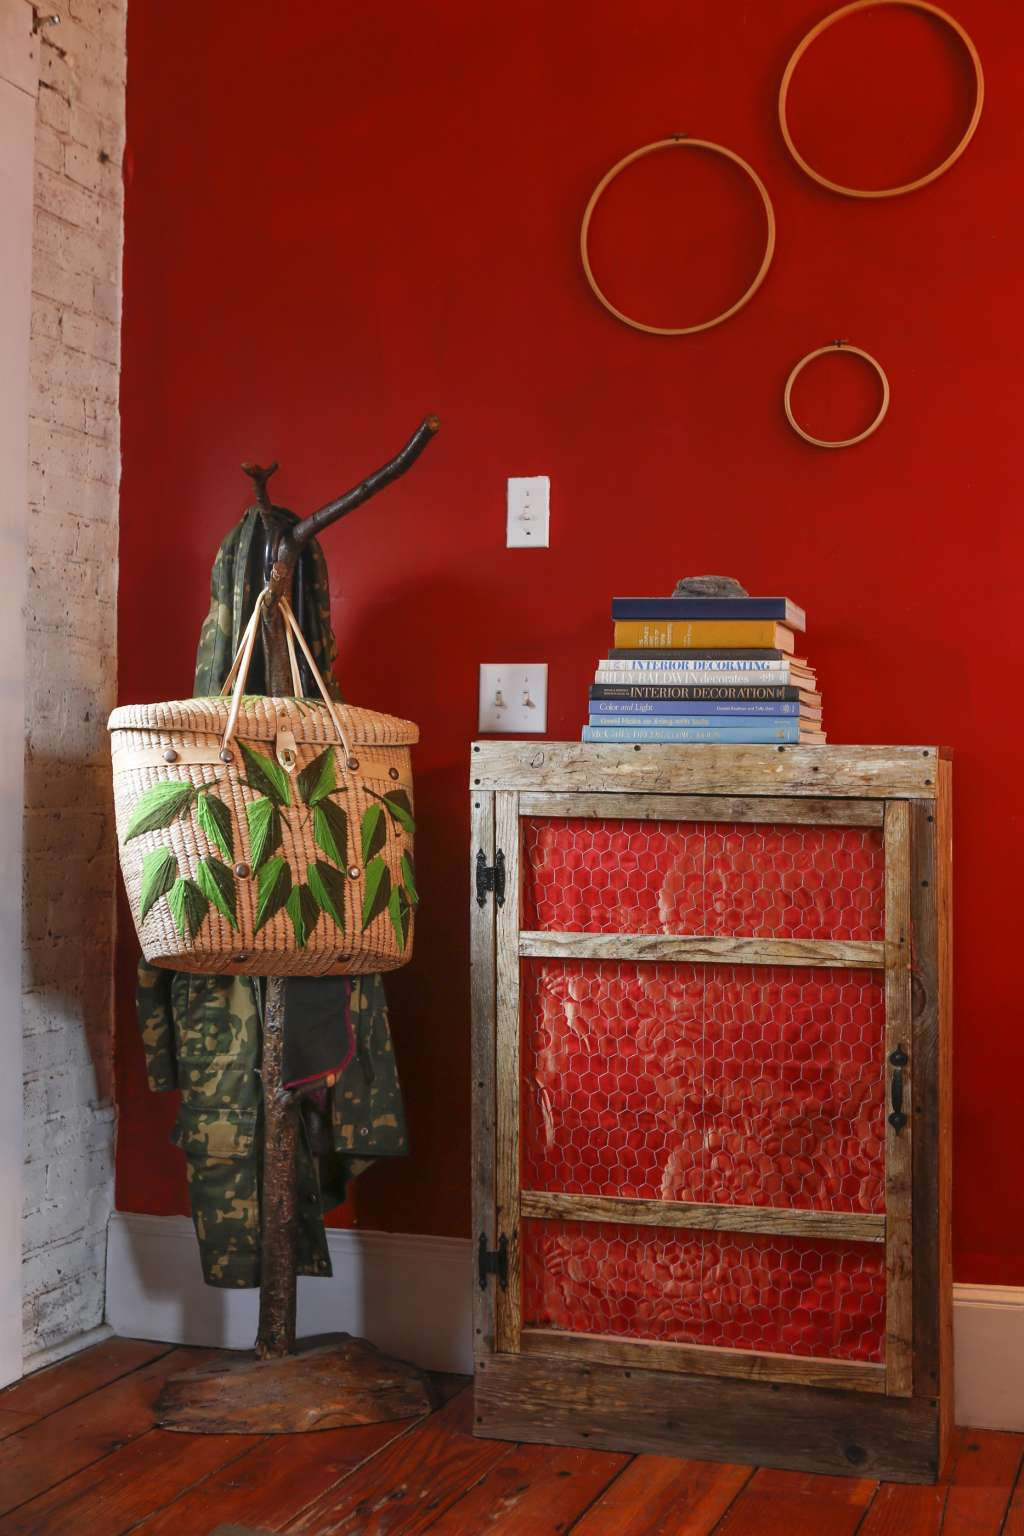 Show Your Colors: Our Favorite Red, White and Blue Interiors